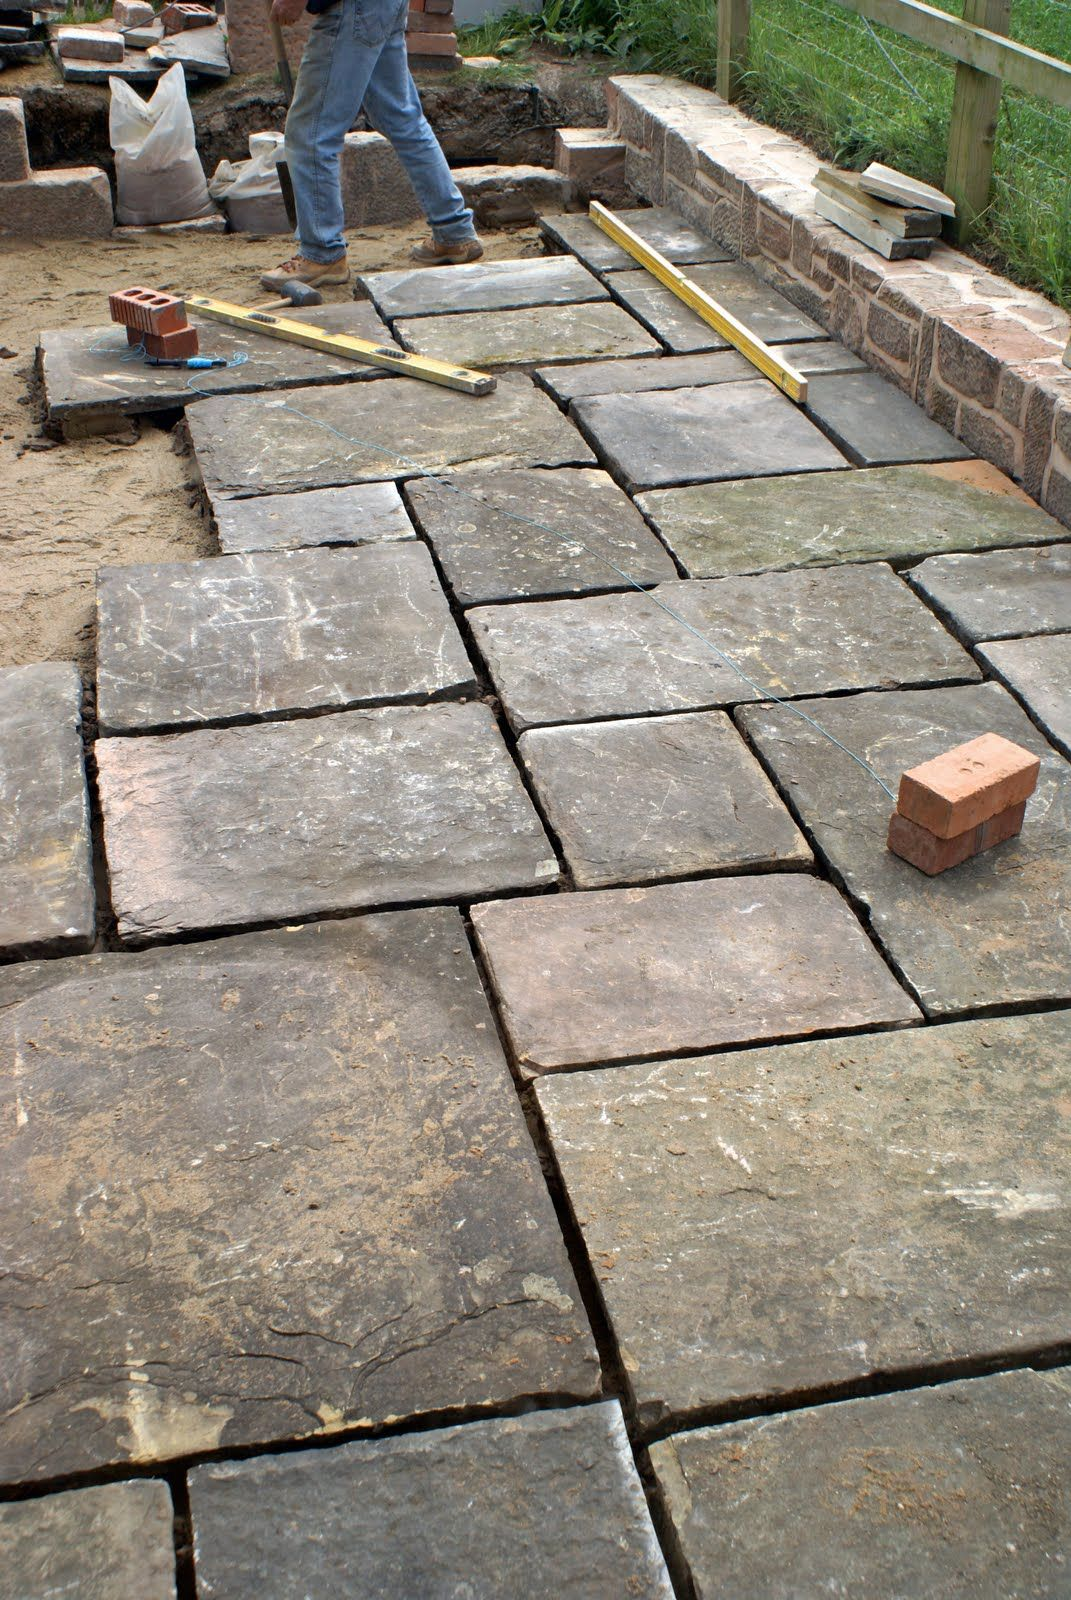 21 Stunning Picture Collection for Paving Ideas  Driveway Ideas  Cheap paving ideas Paving